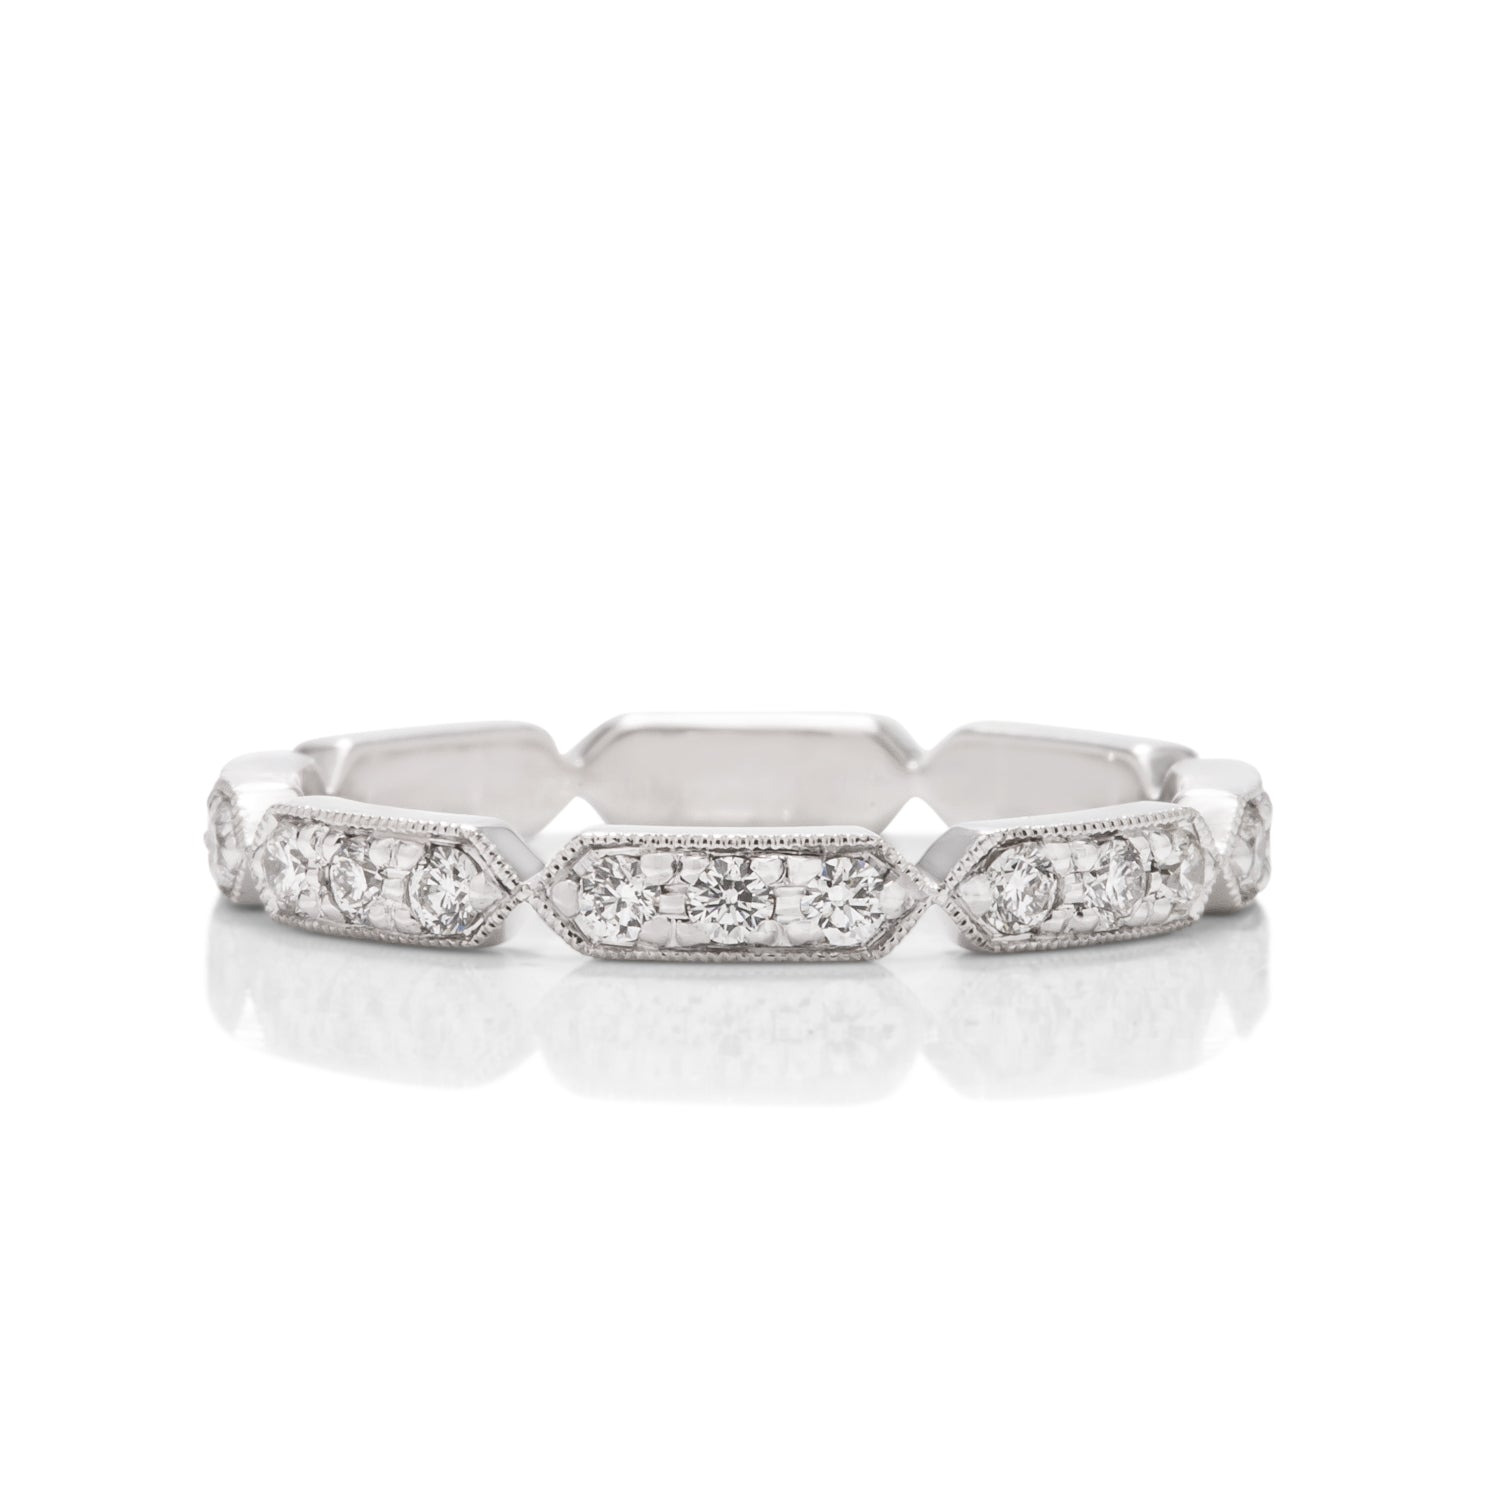 Diamond Wedding Band - Charles Koll Jewellers